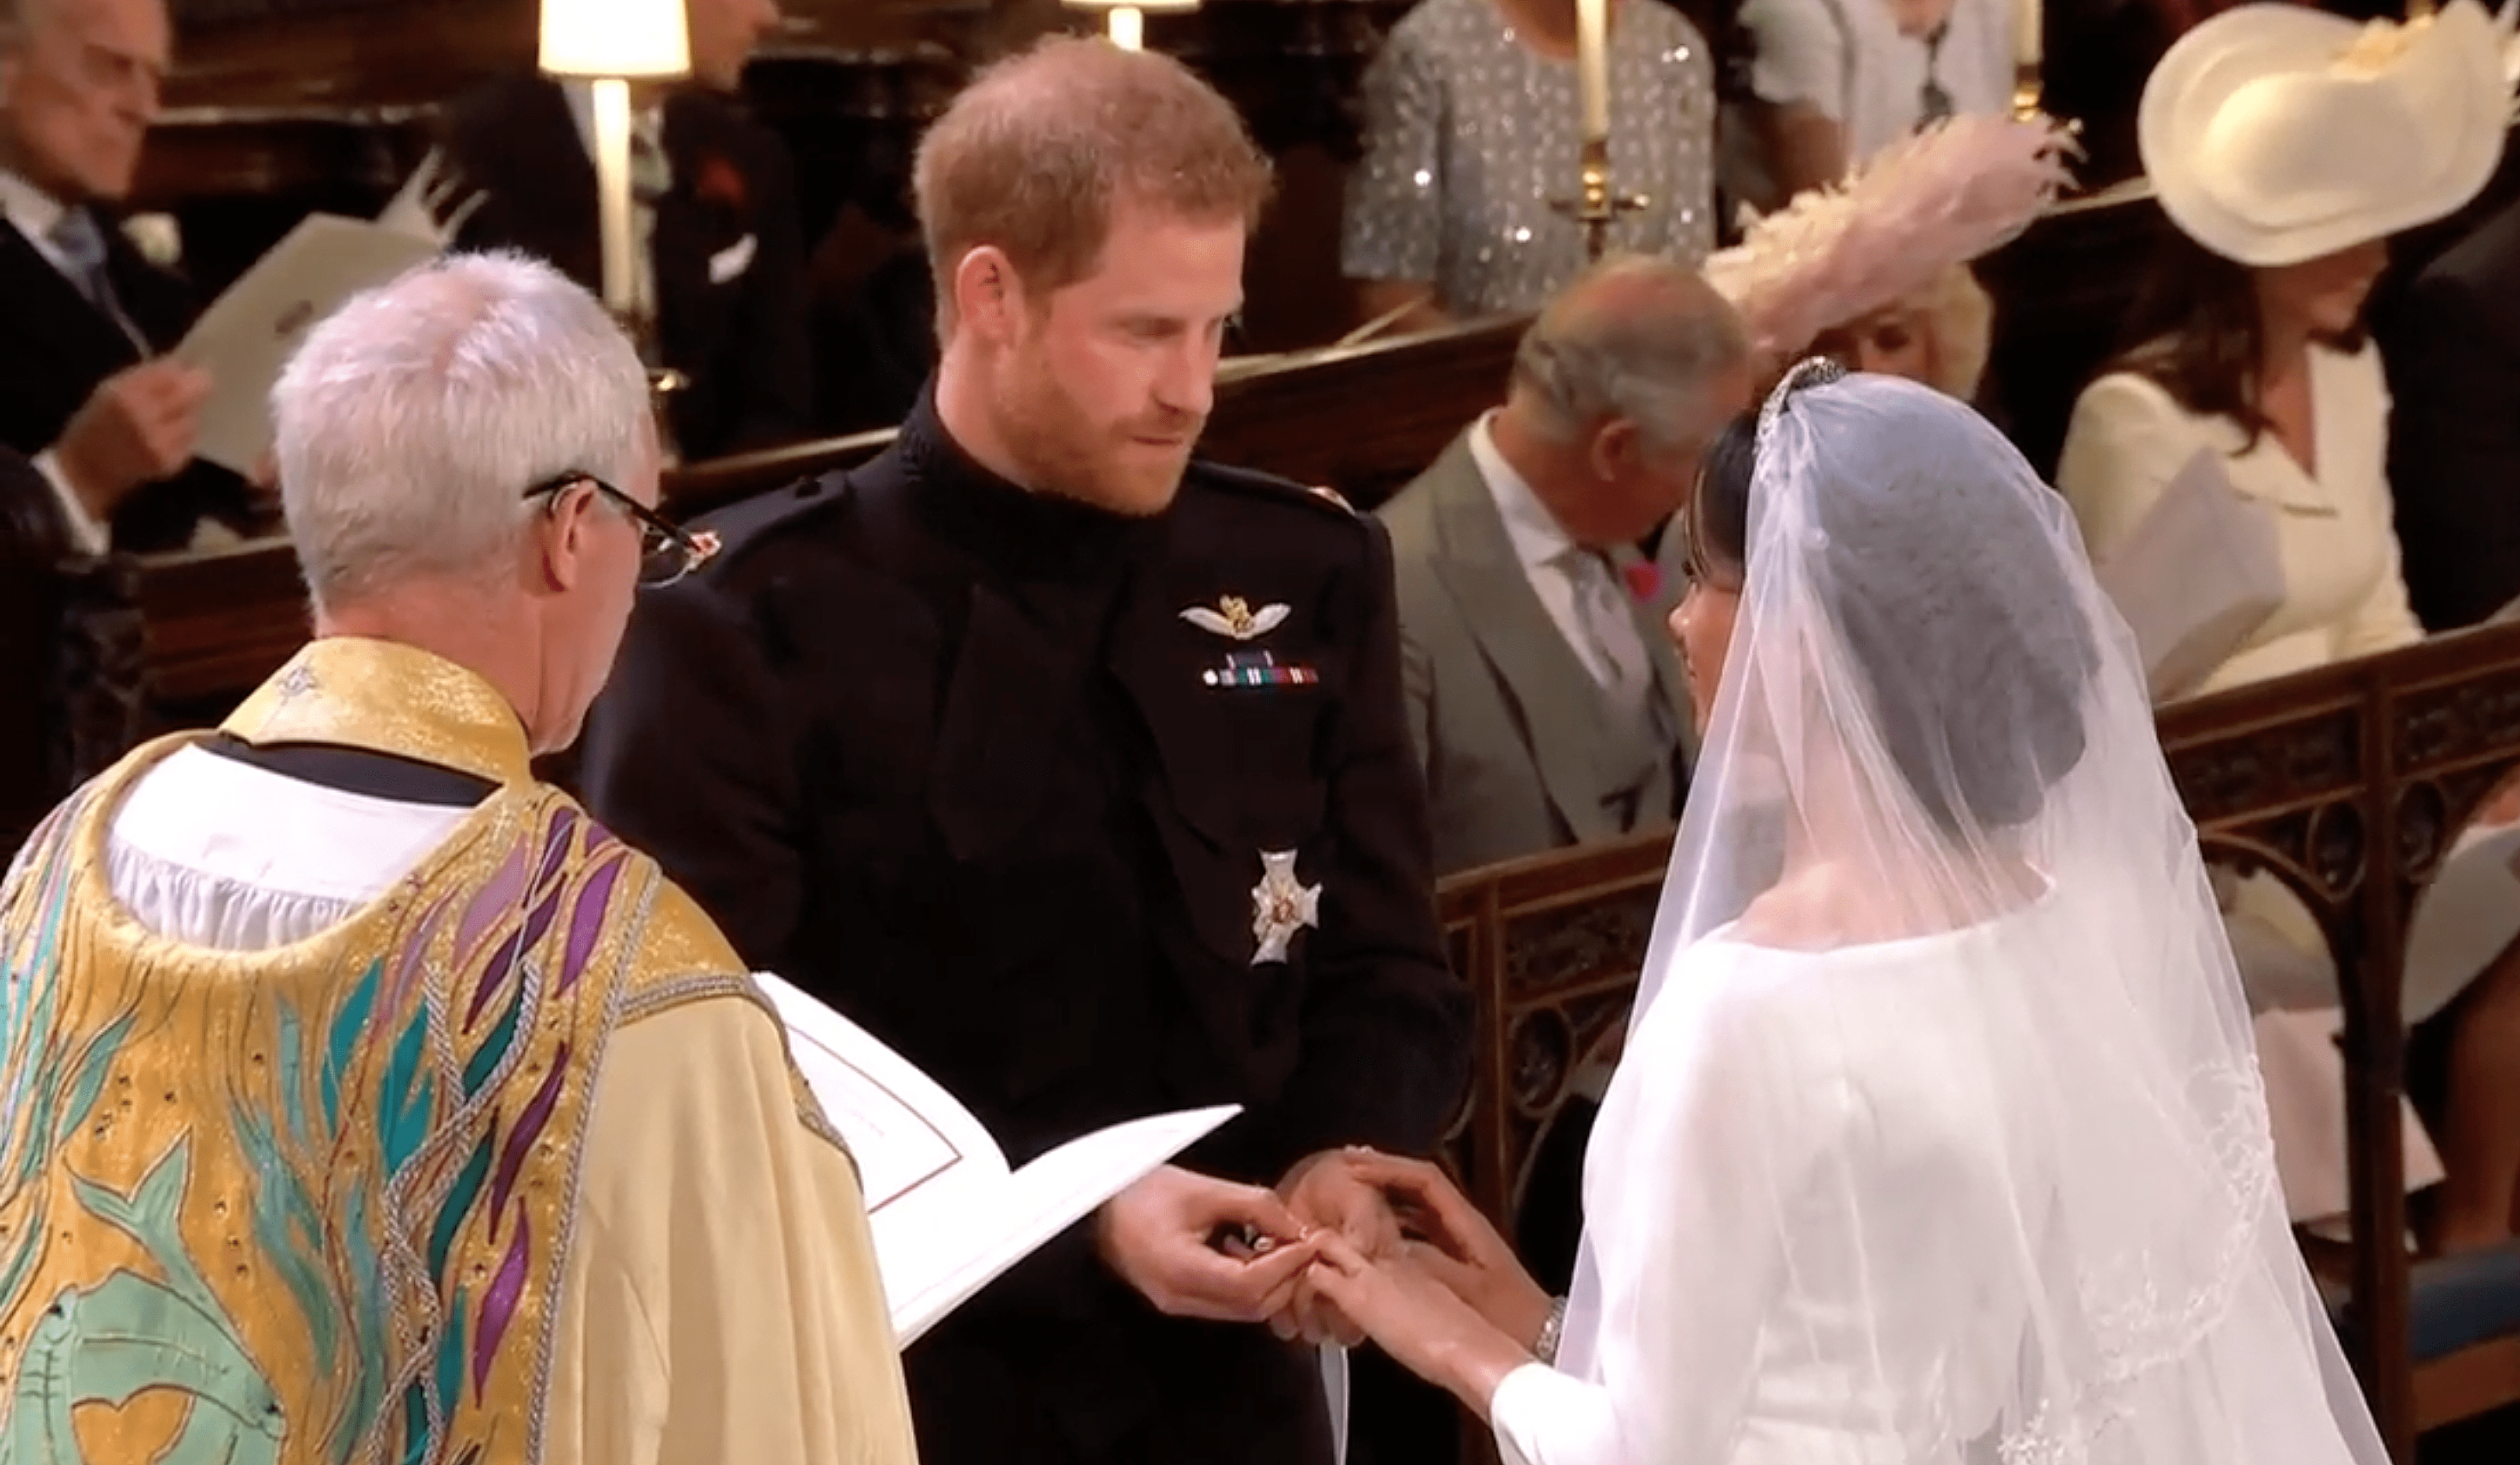 Harry and Meghan Markle's Royal Wedding Was The Perfect Representation of a Modern Empowered Couple